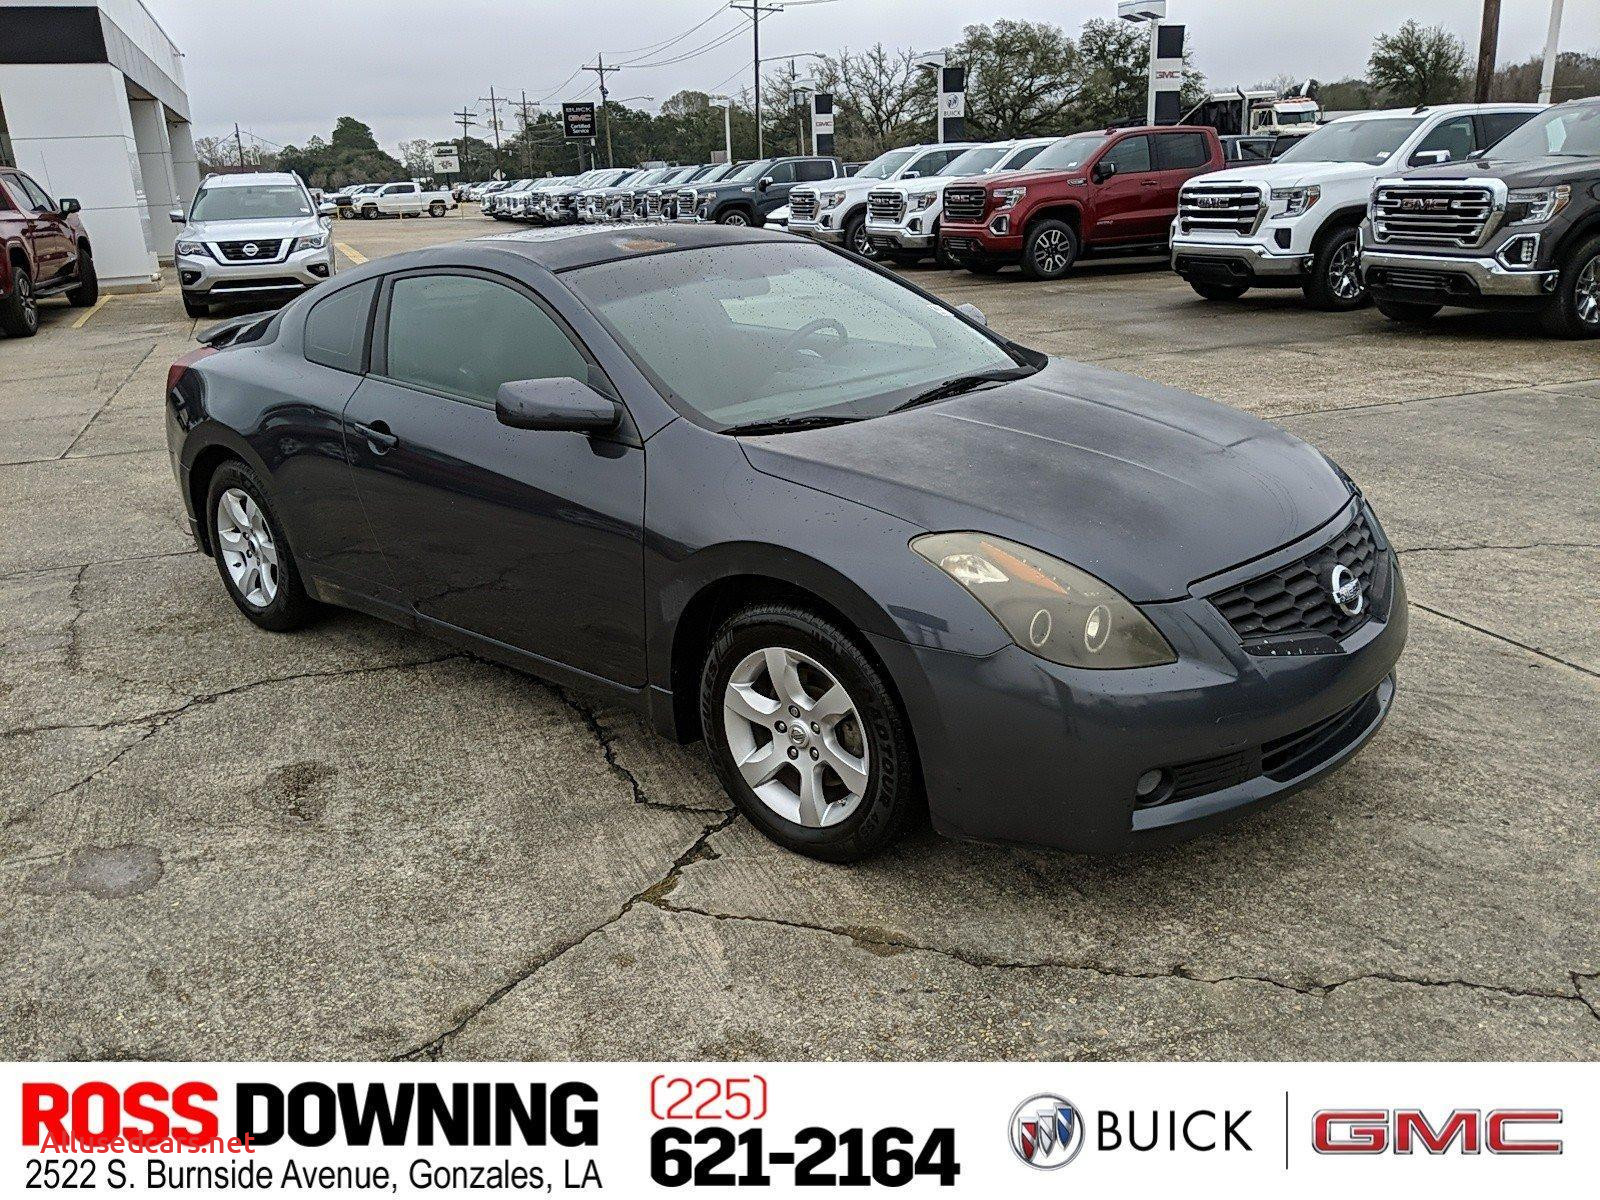 2015 Buick Verano New Used Nissan Altima at Ross Downing In Hammond and Gonzales